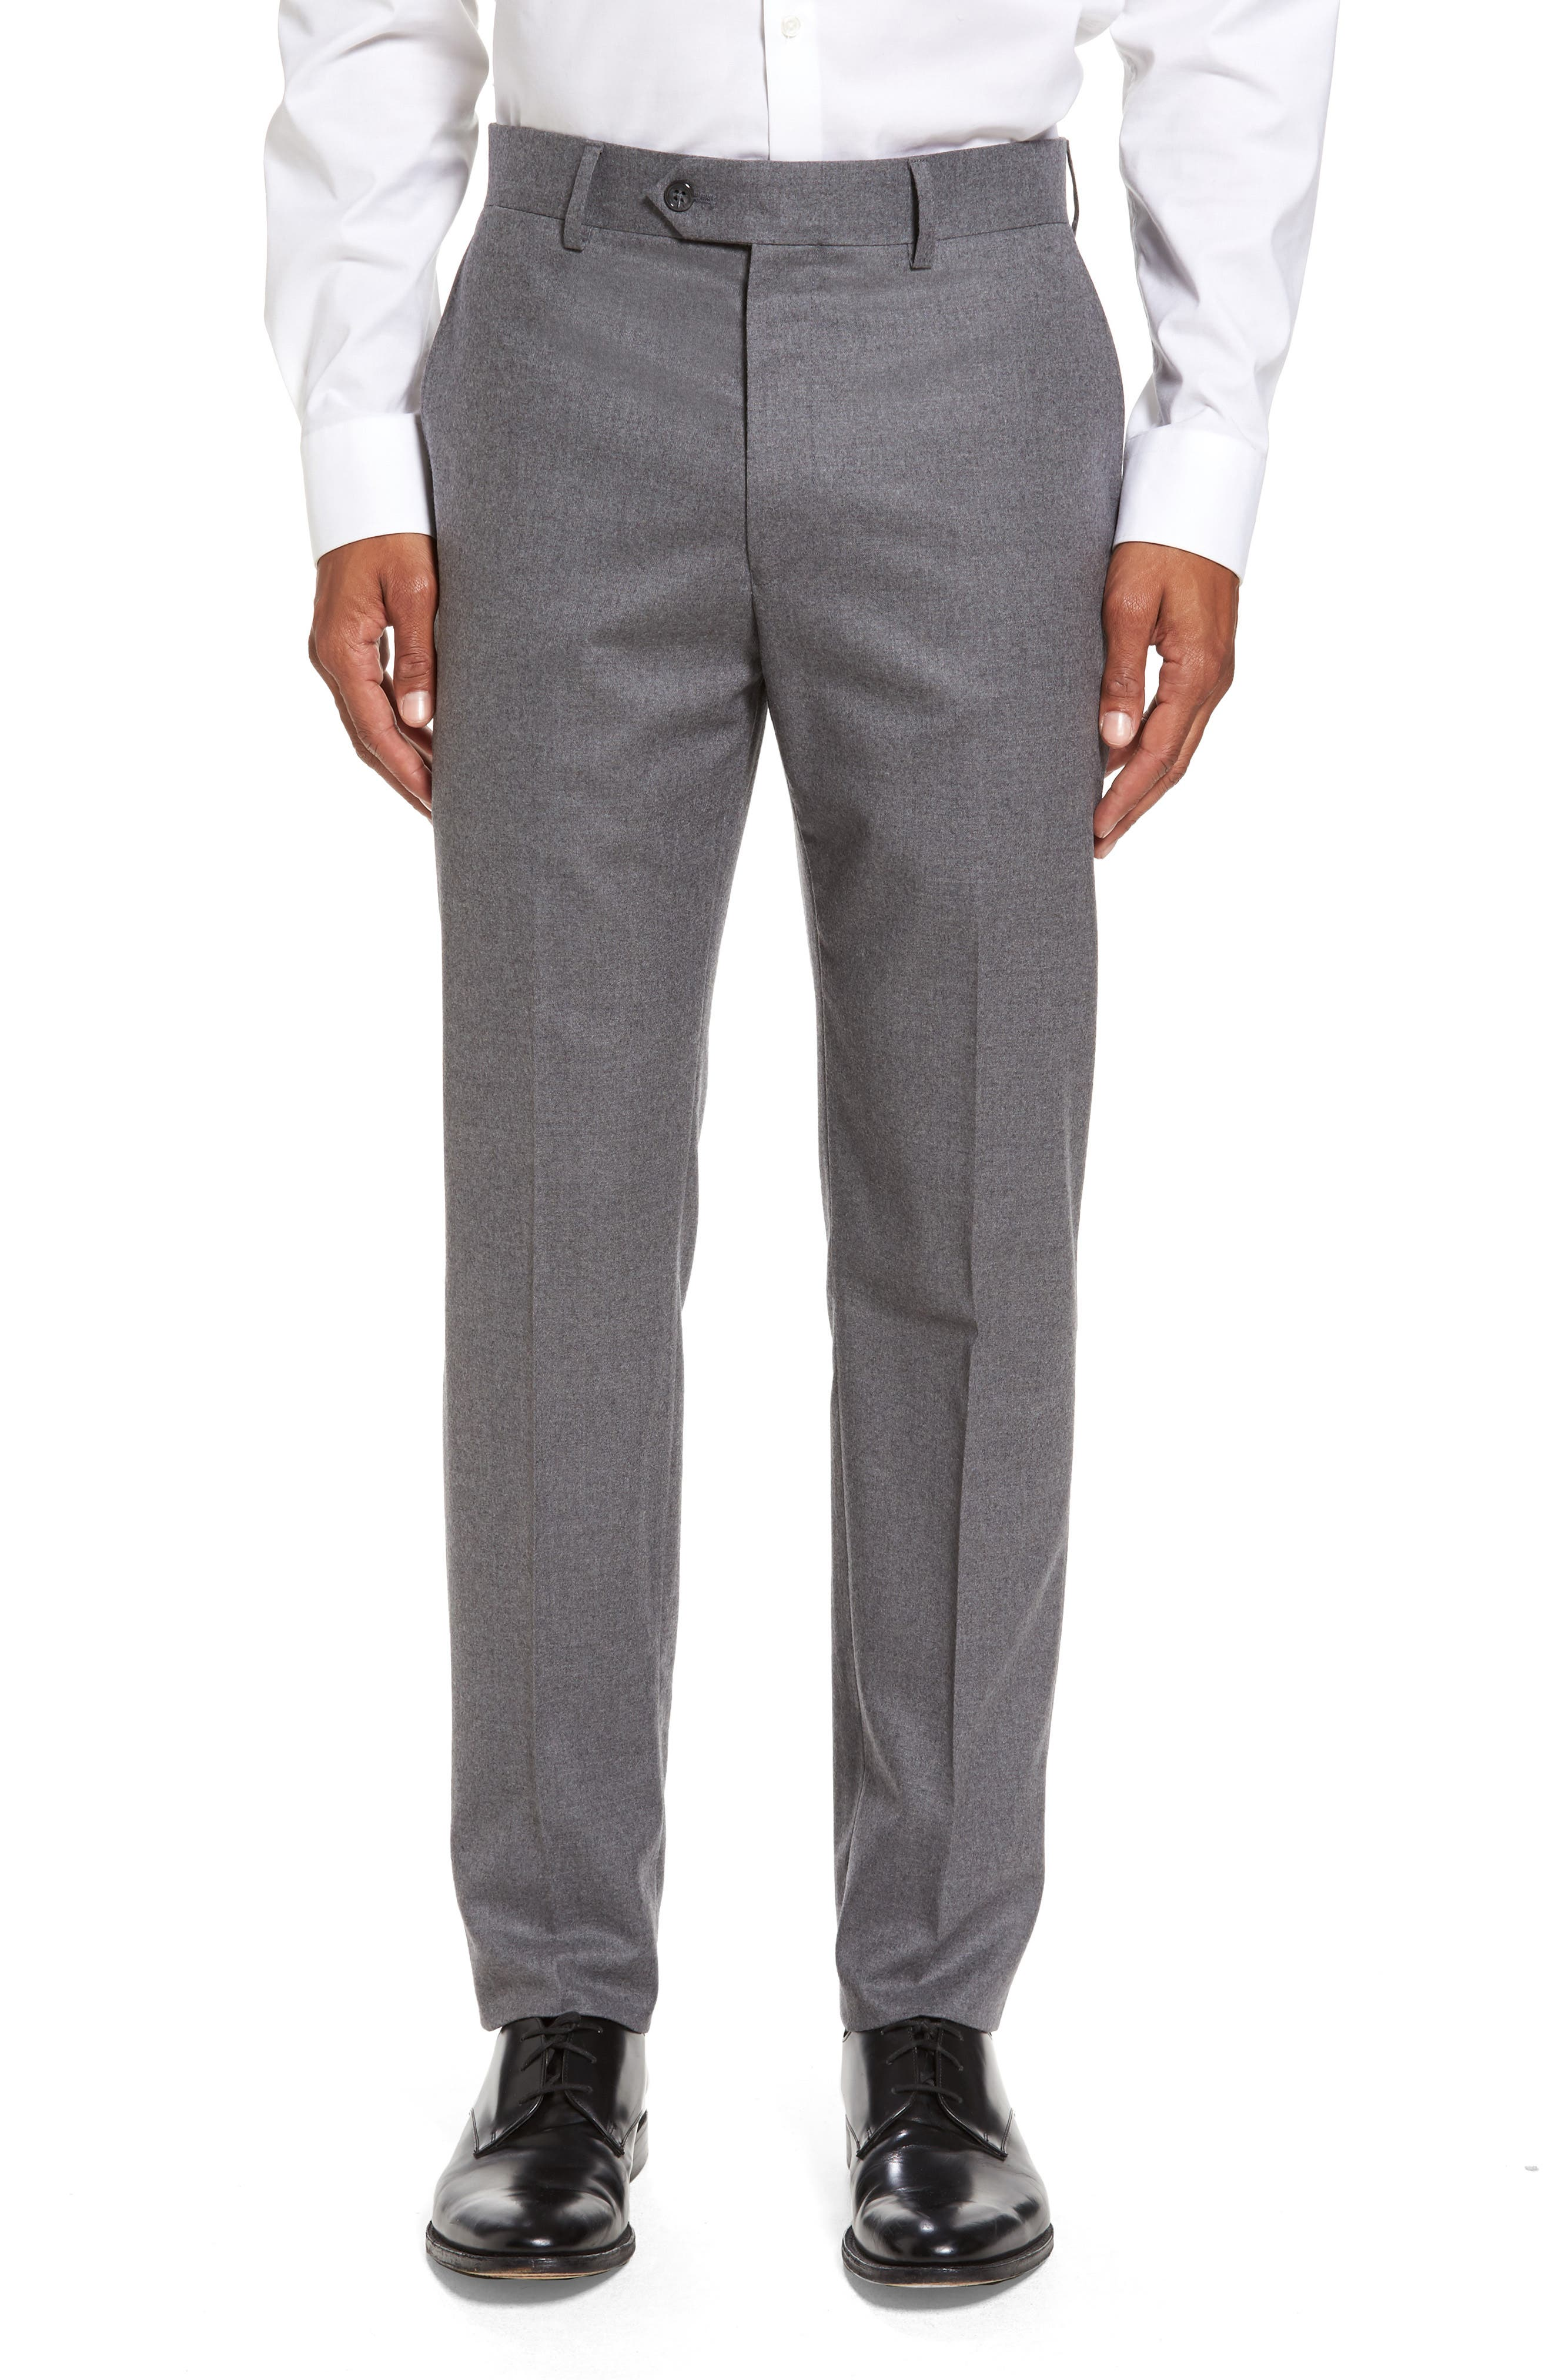 Todd Snyder White Label Sutton Flat Front Stretch Wool Trousers